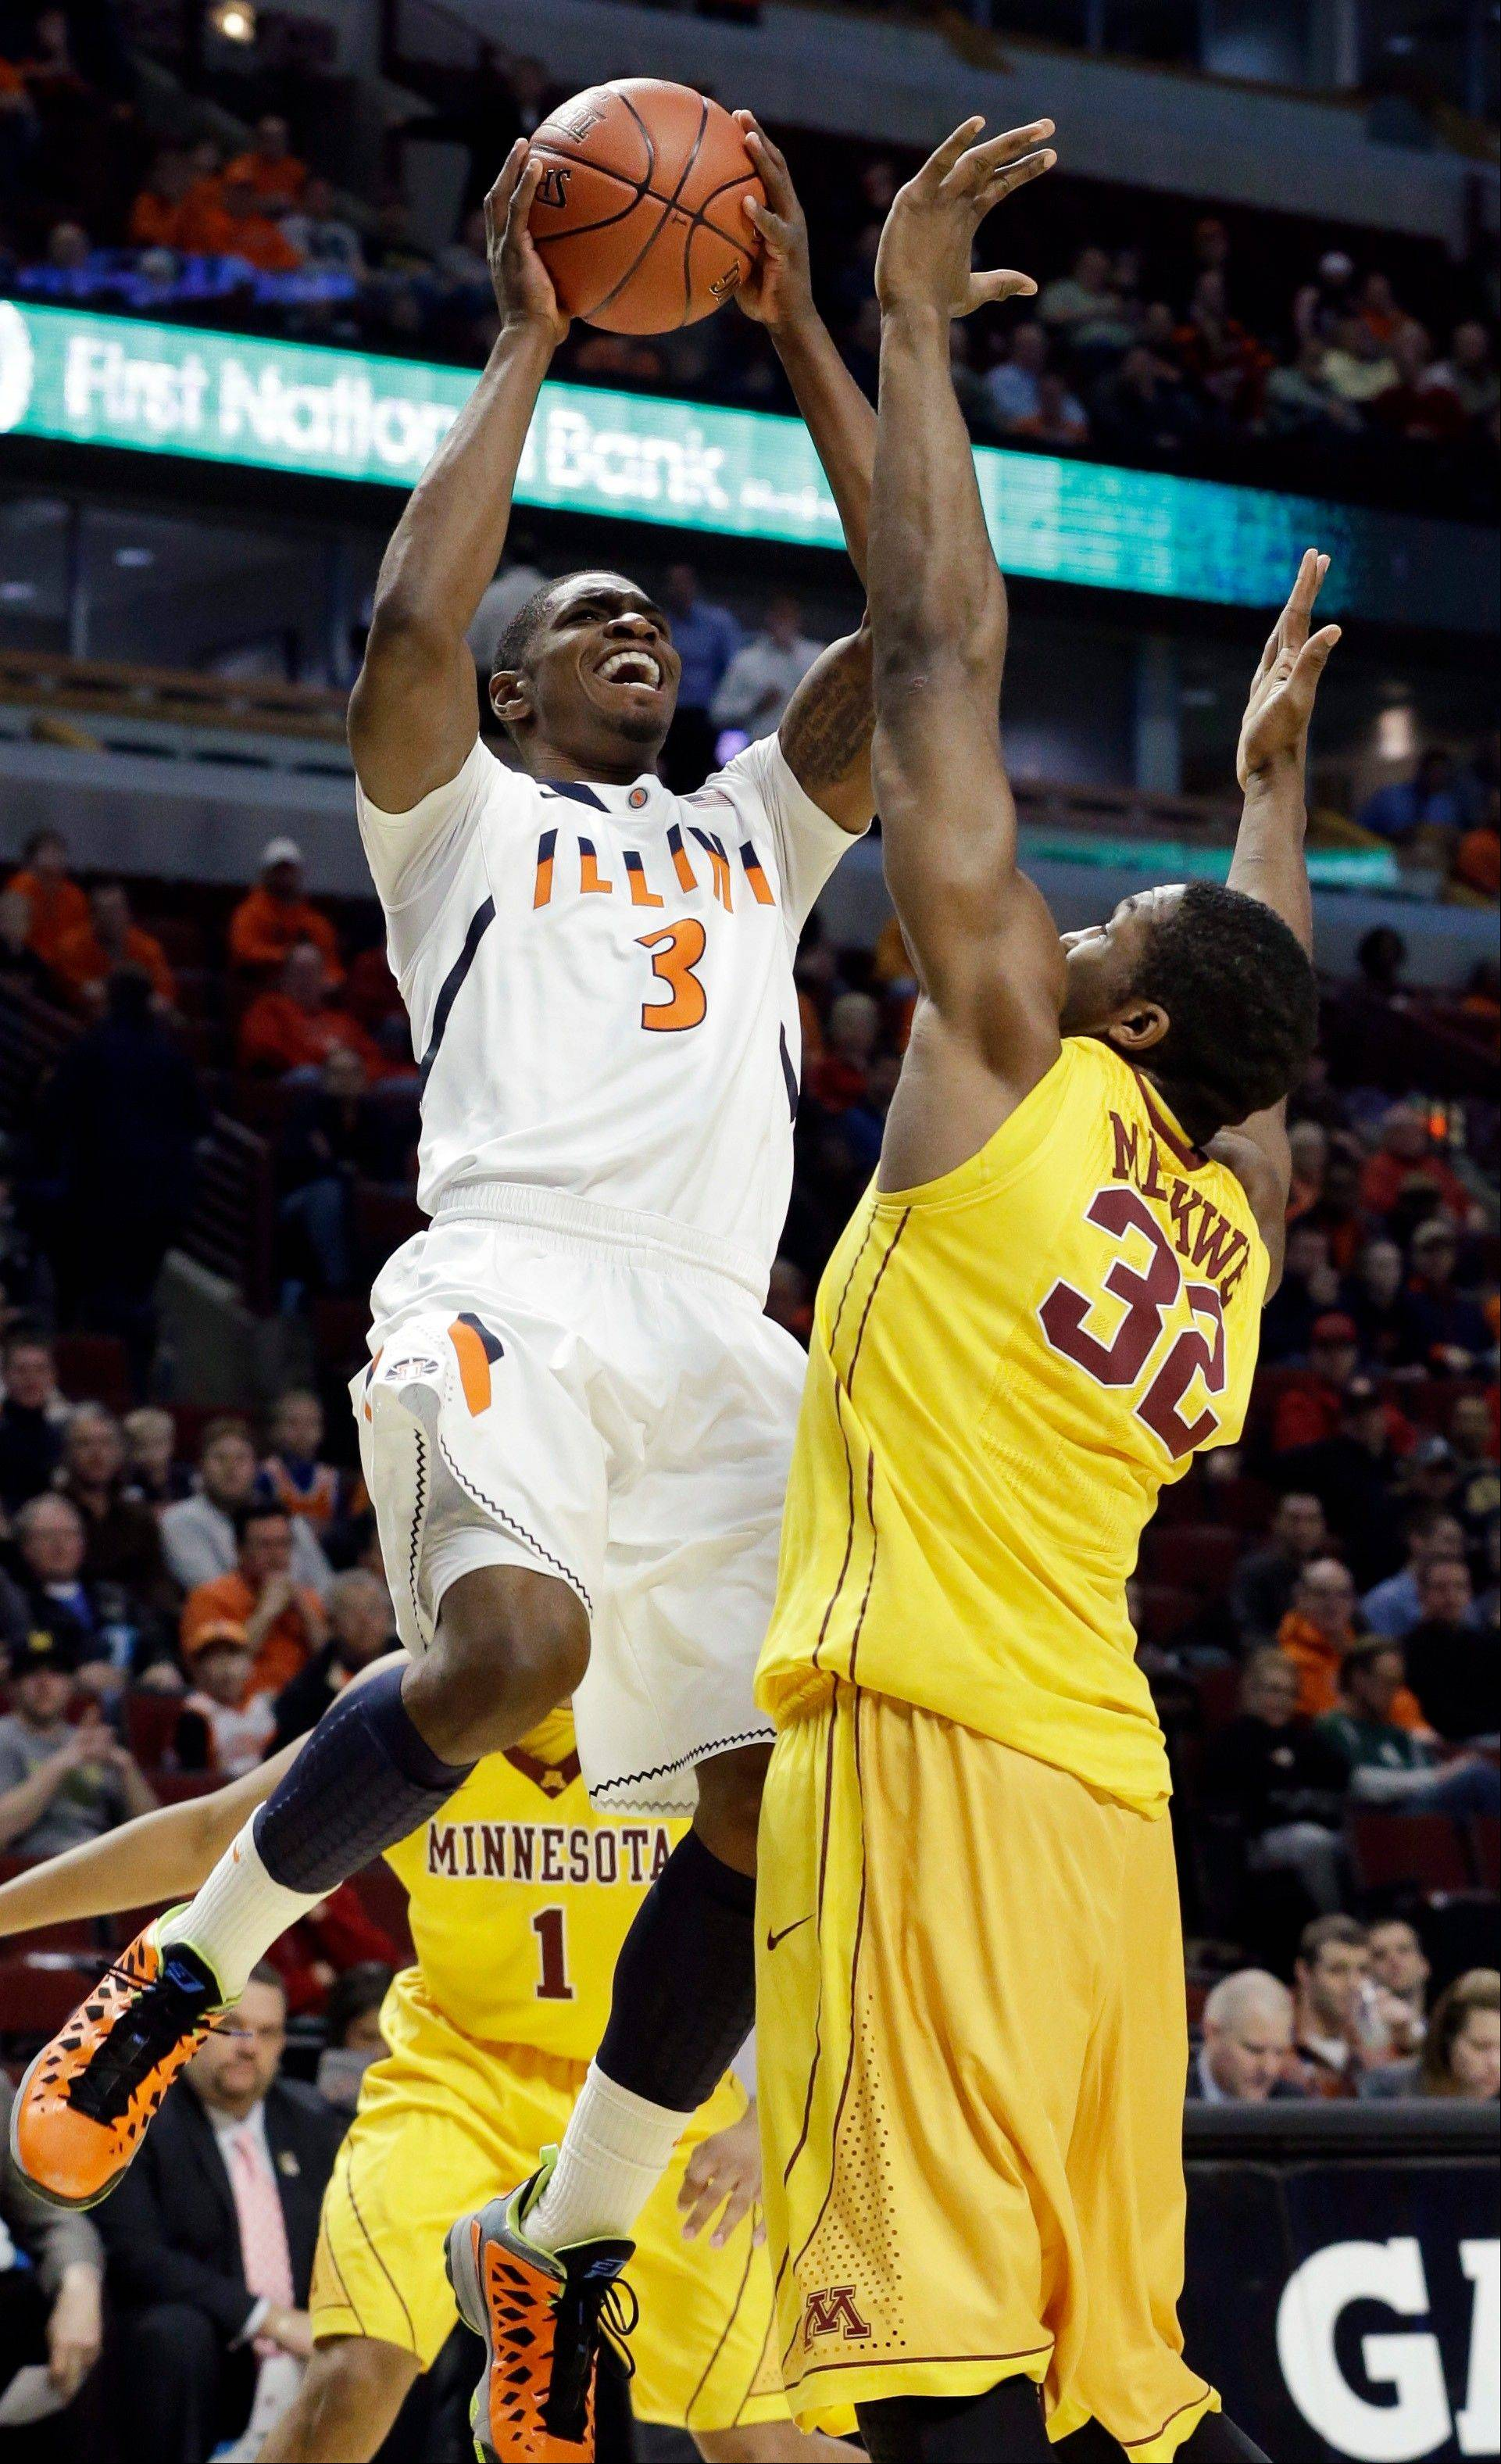 Illinois' Brandon Paul (3) shoots over Minnesota's Trevor Mbakwe (32) during the first half.